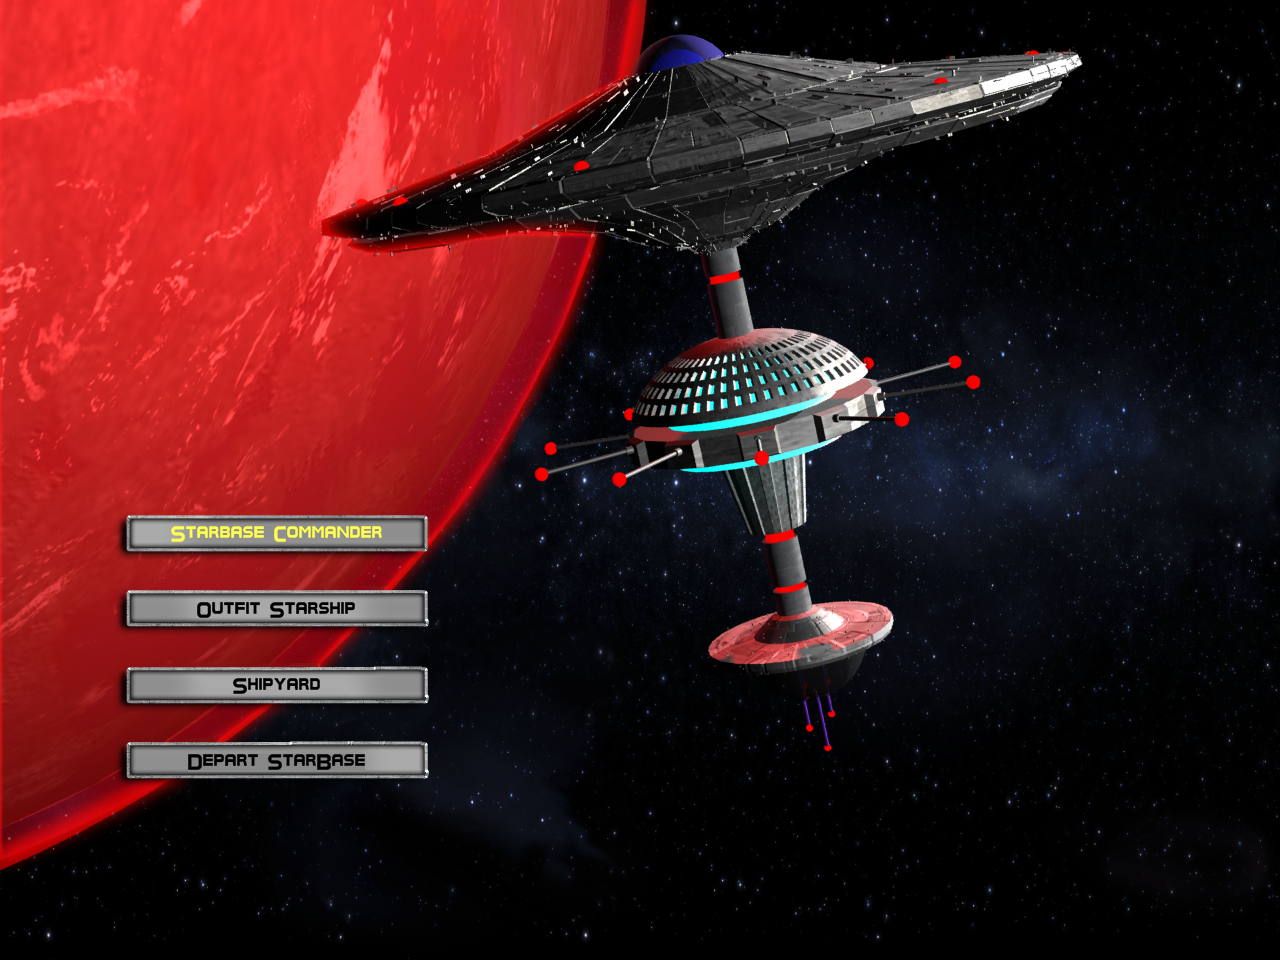 The Starbase, courtesy of UQMHD